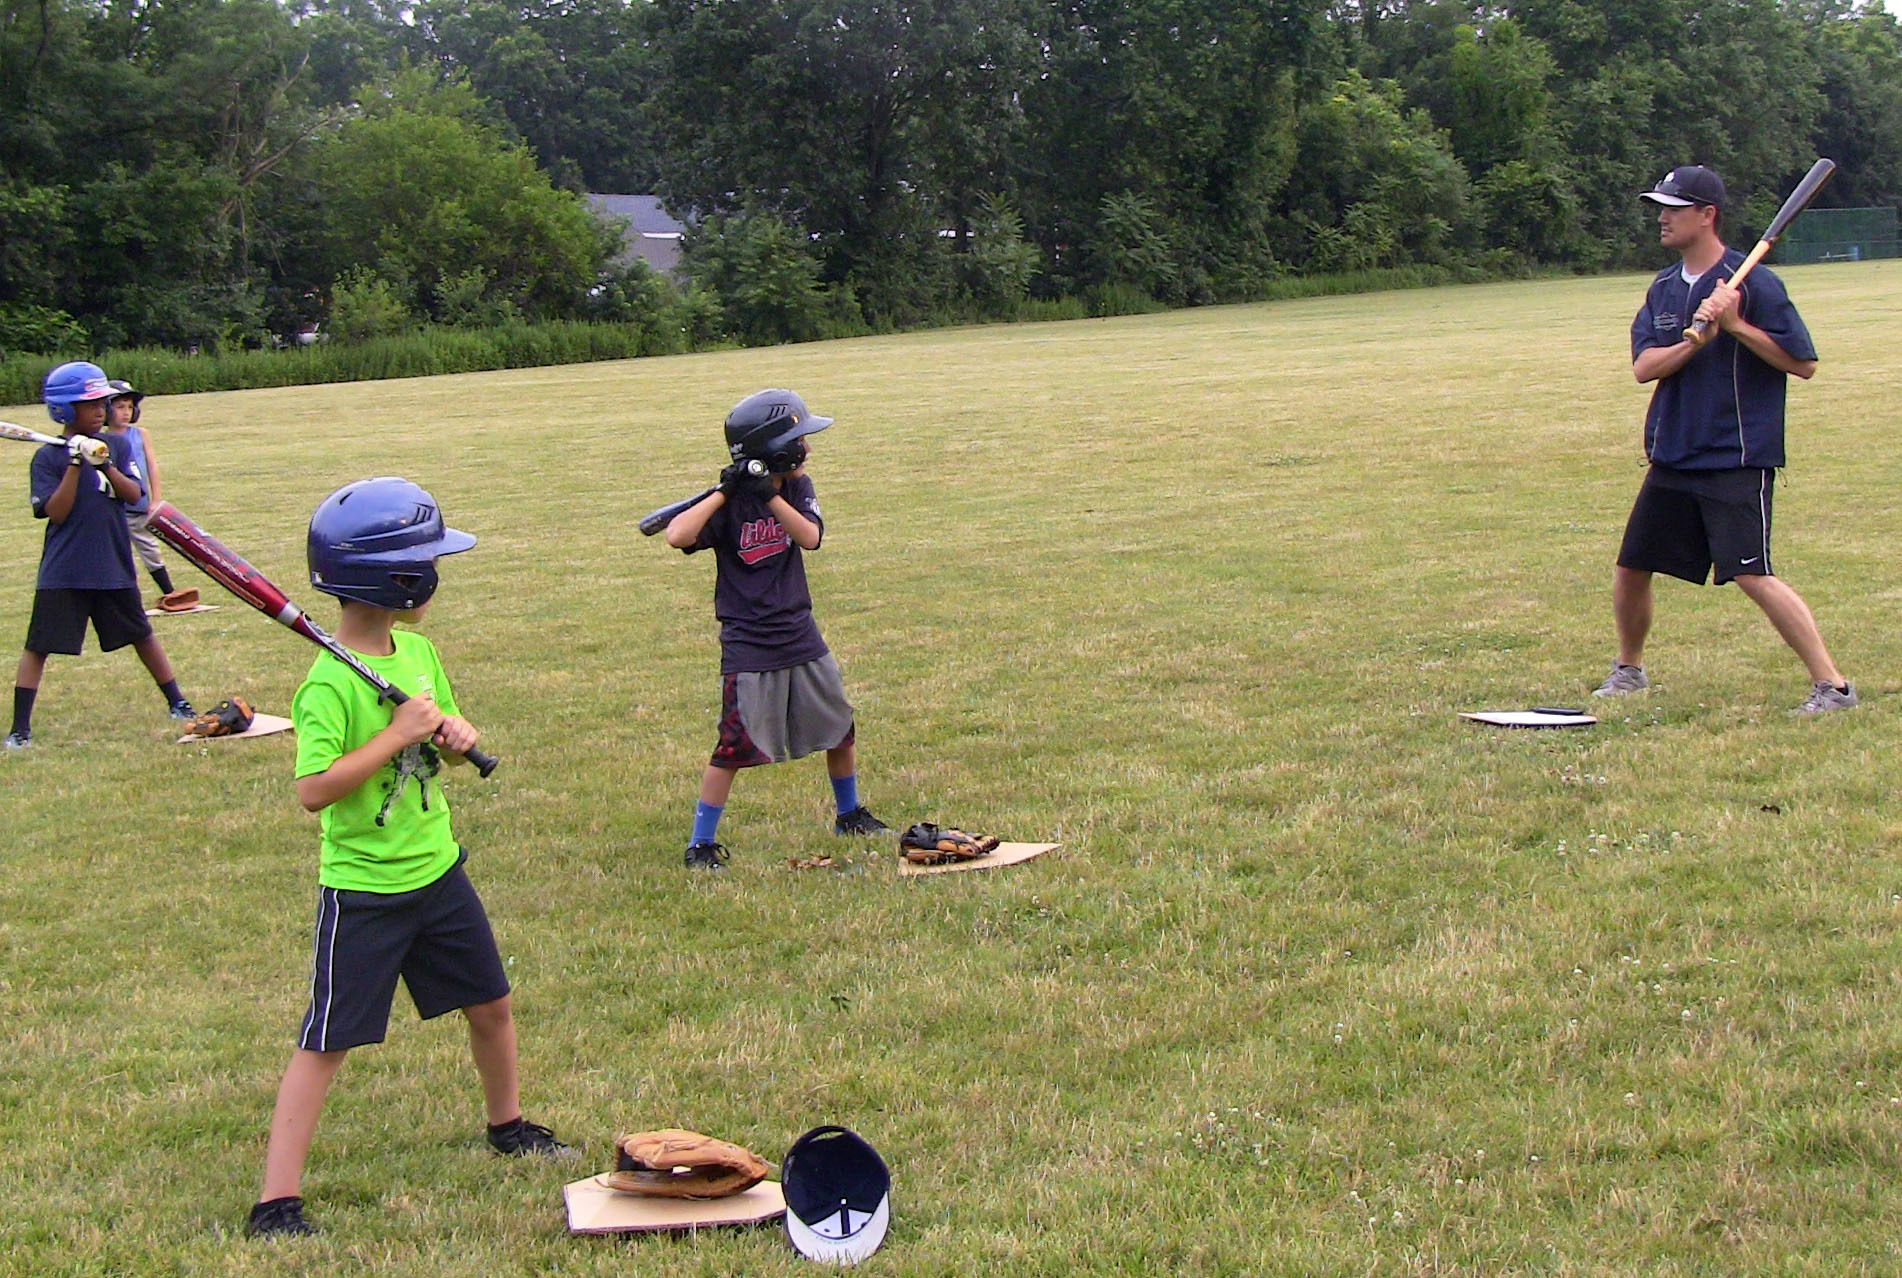 8fcce99bf80439182885_2014_Summer_Clinic_-_Kania_bat_instruction_7-9-14.jpg